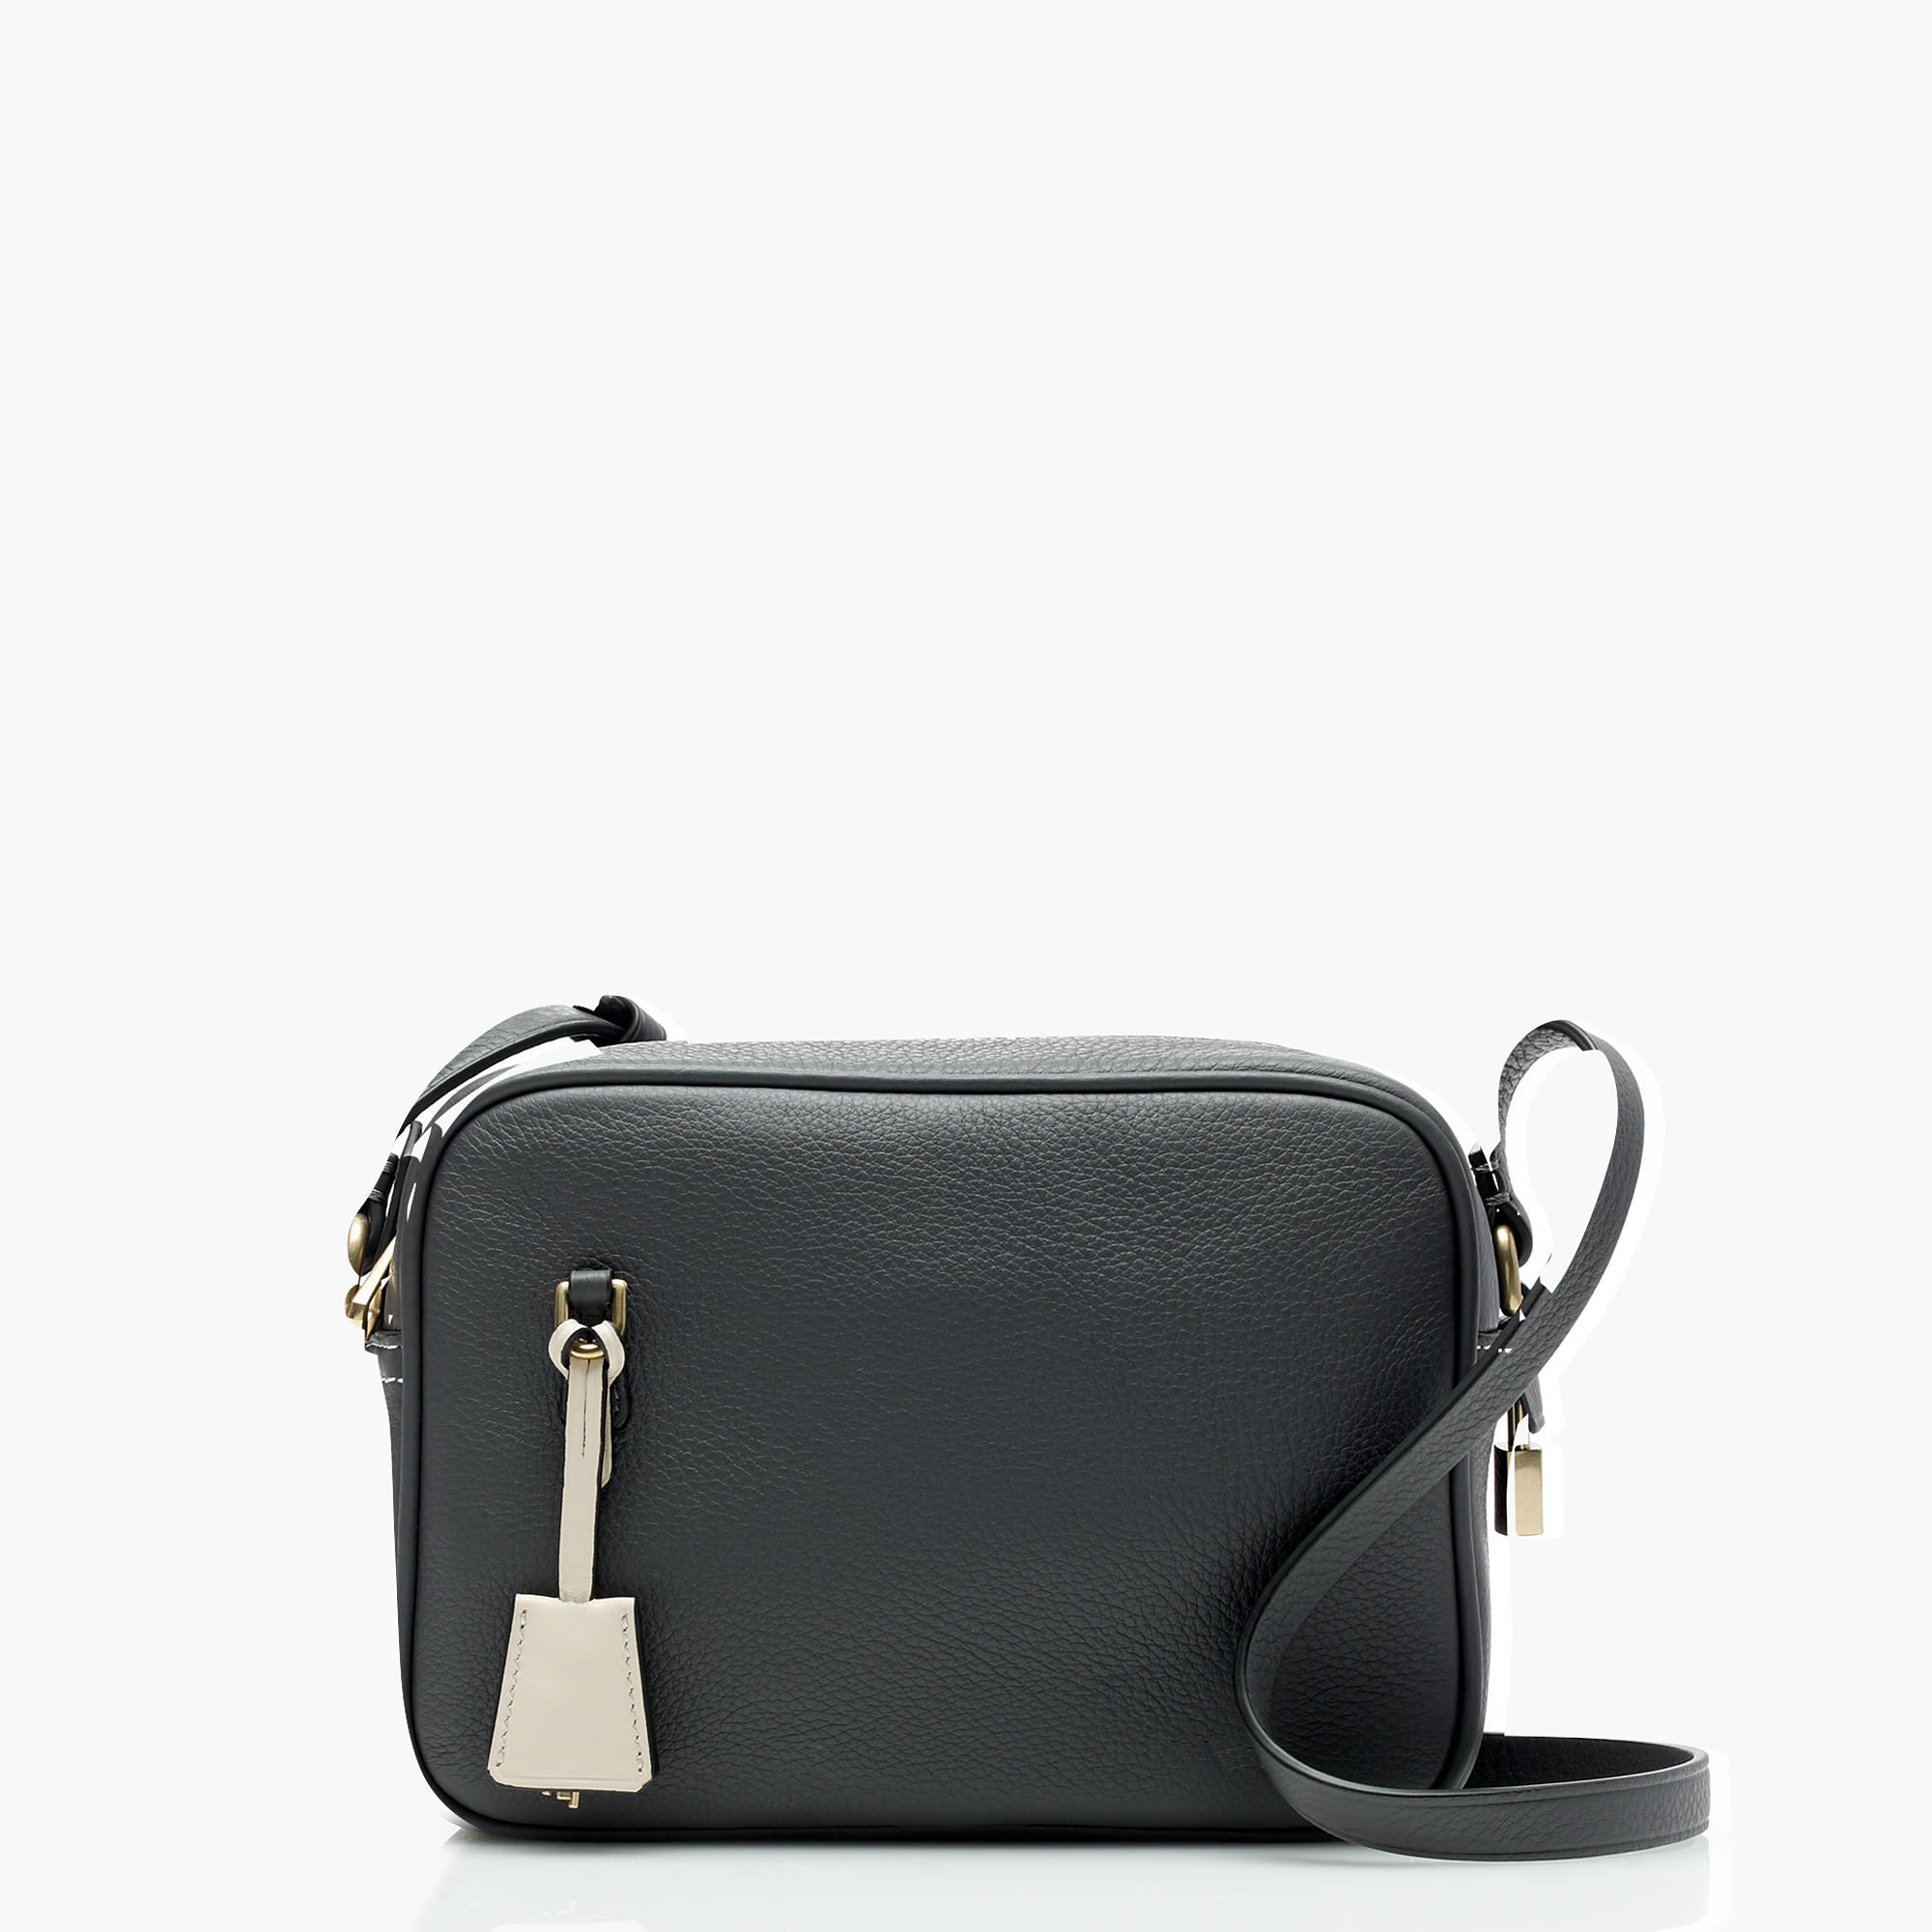 J.Crew Signet Bags in Italian Leather, Deep Pewter